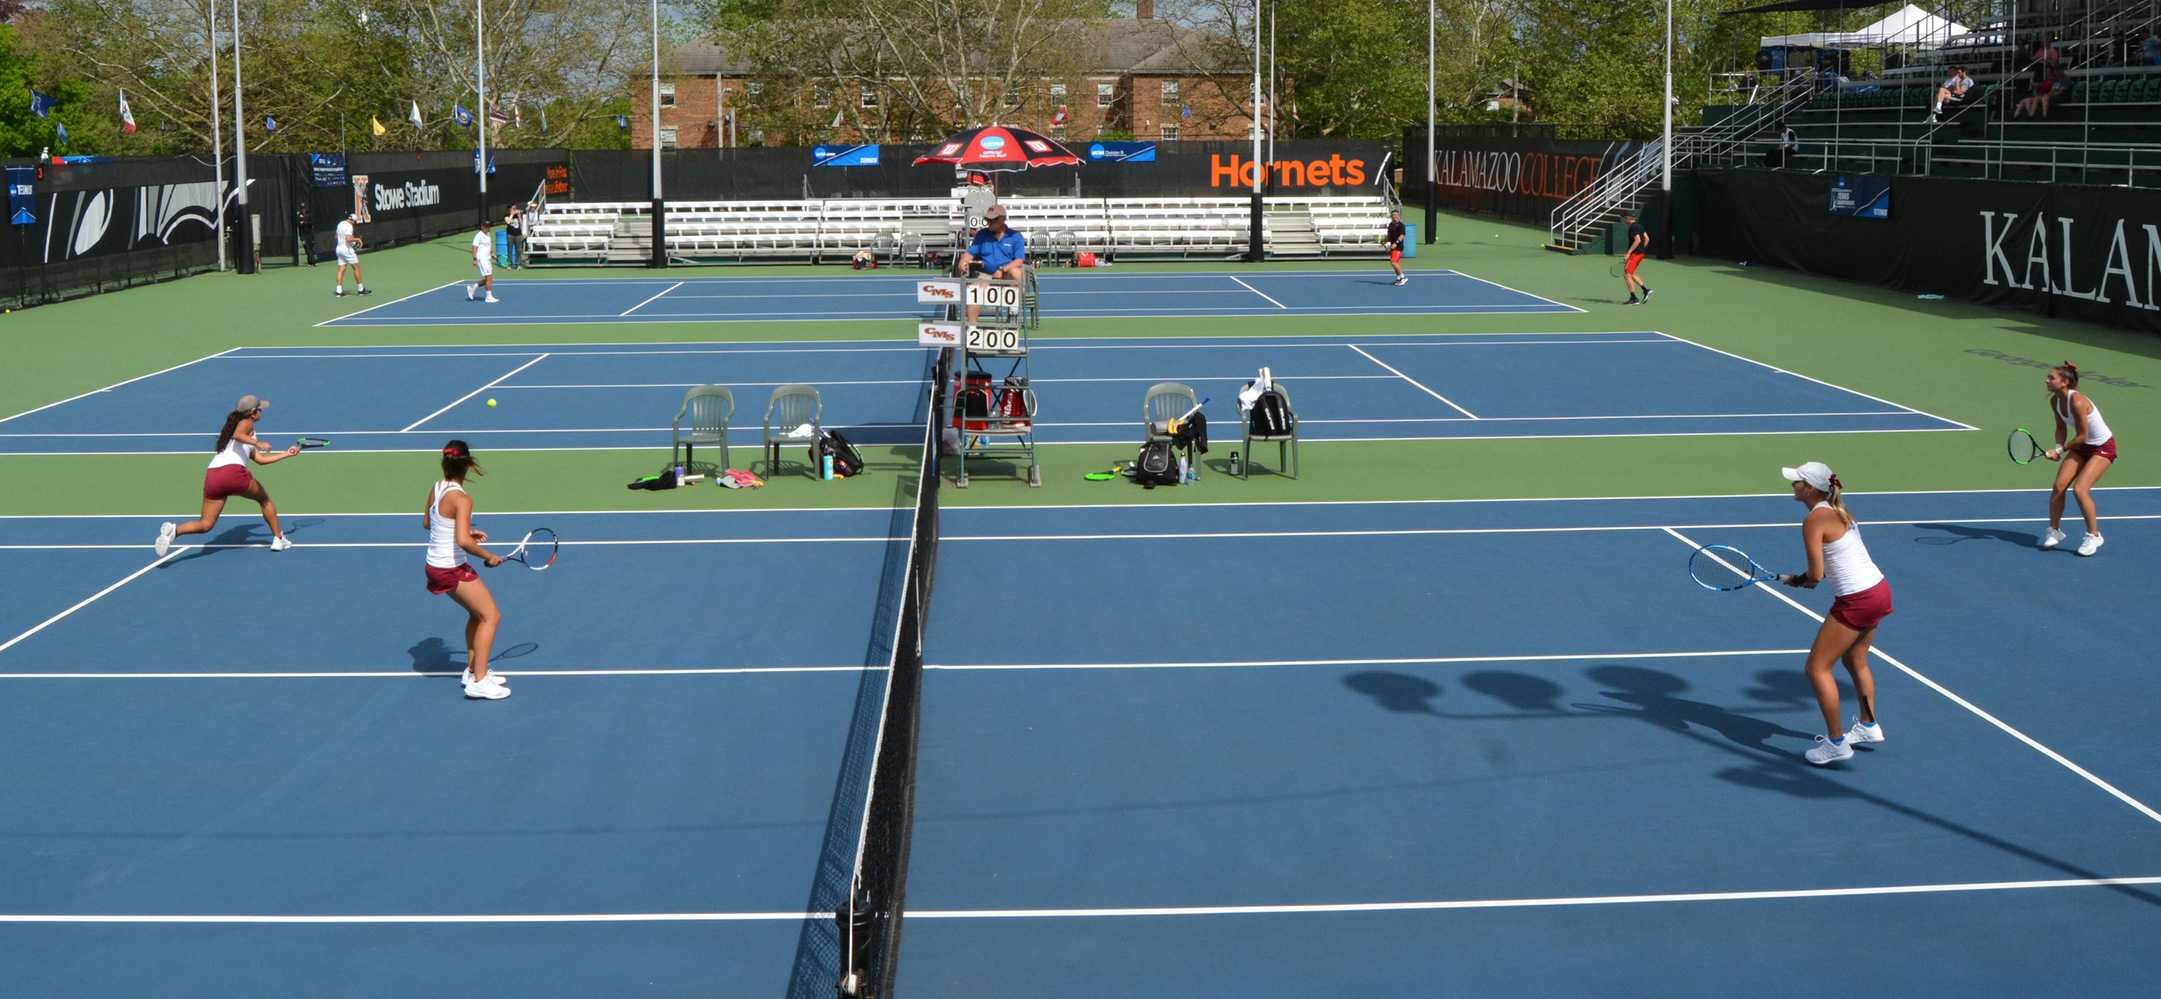 Caroline Cox and Catherine Allen (right) face Nicole Tan and Sarah Bahsoun (left) in the NCAA Doubles Championship